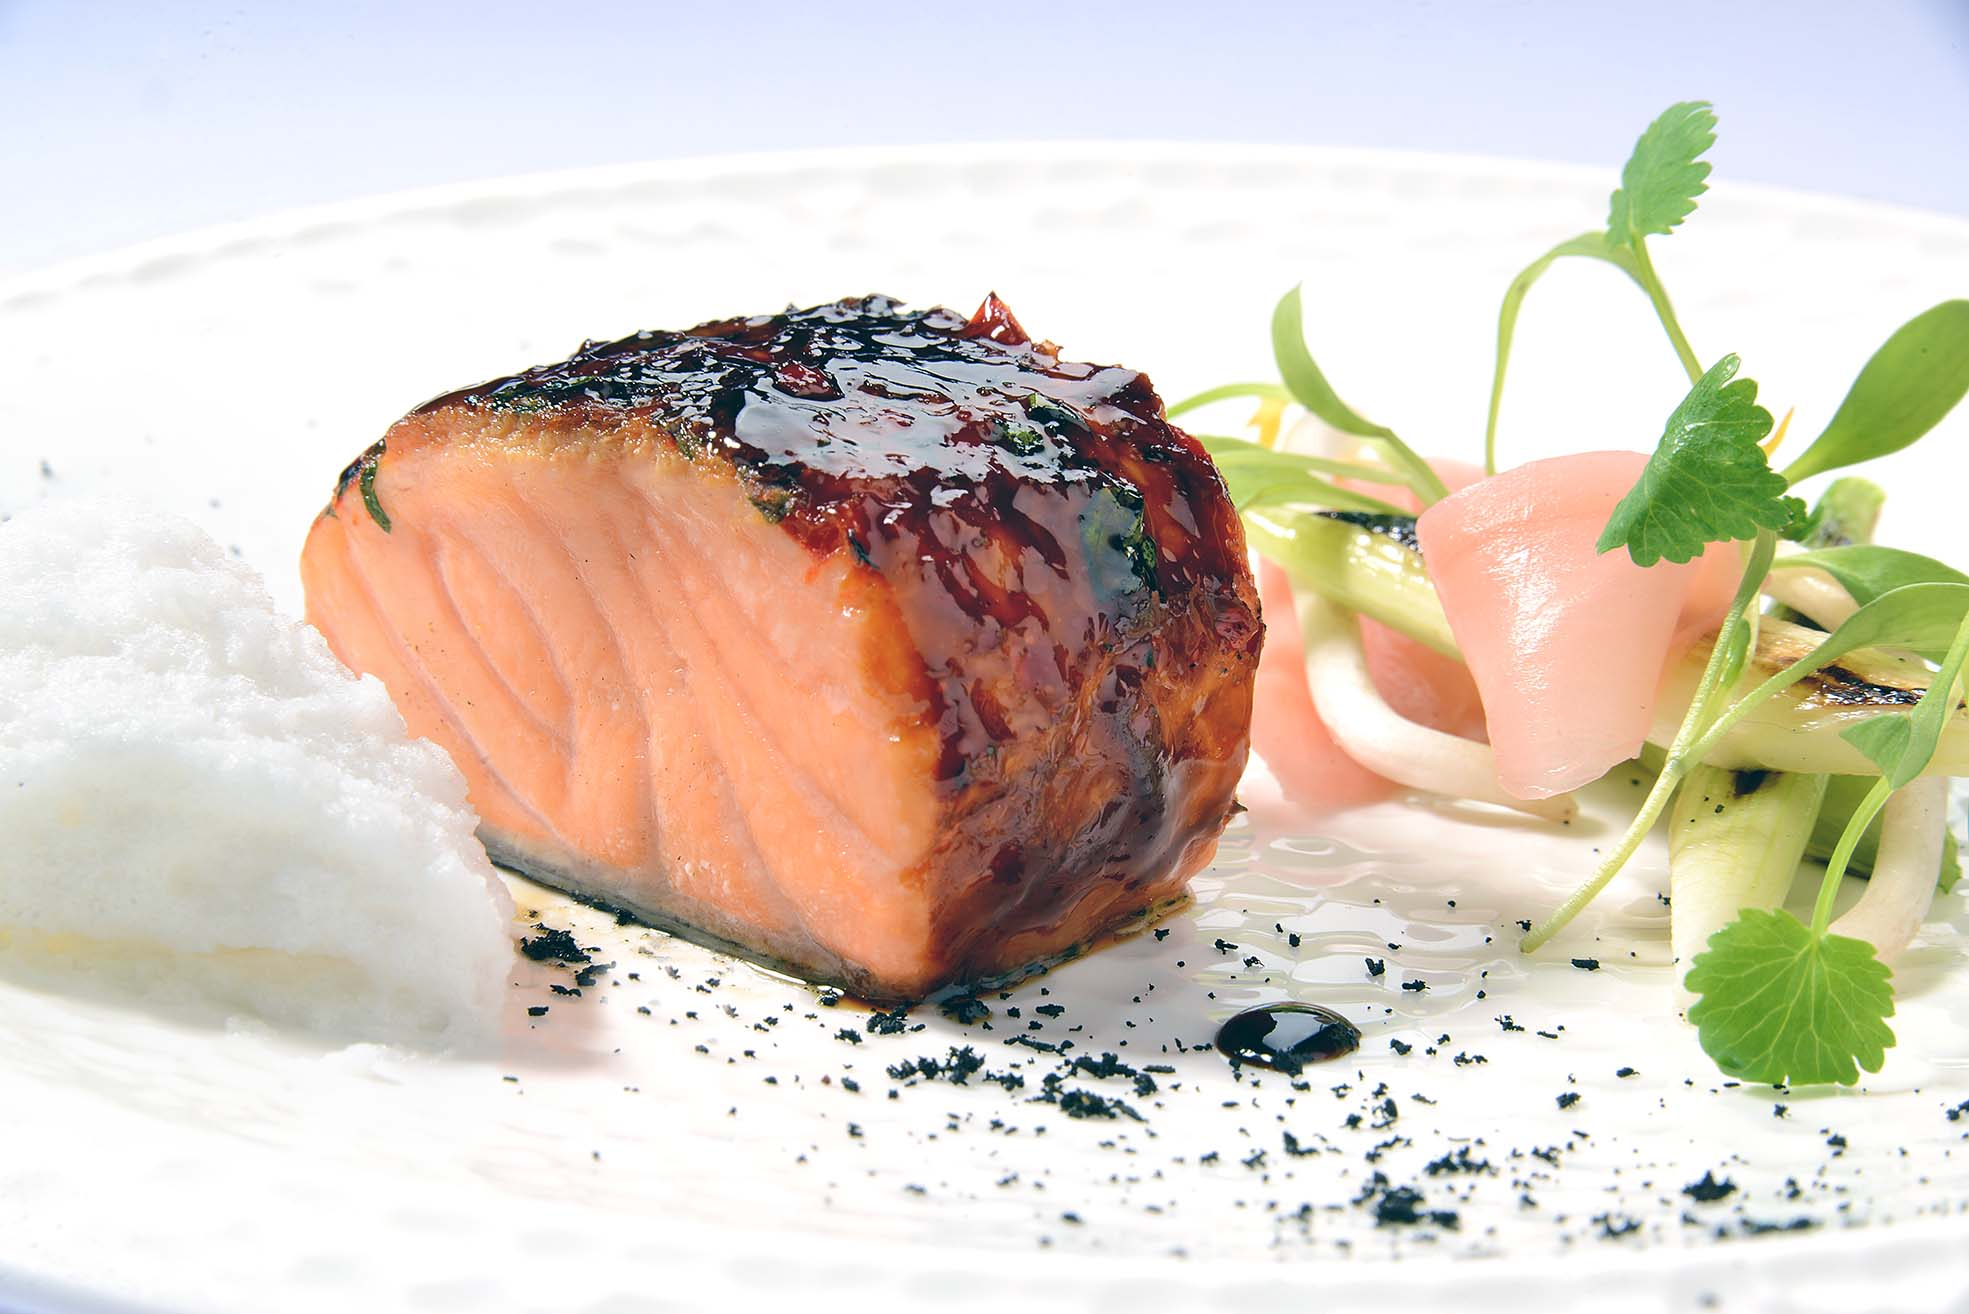 002 NC MENU(151015) Just Cooked Treacle Salmon, Pickled Ginger, Coriander, Lime & Ginger Marshmallow